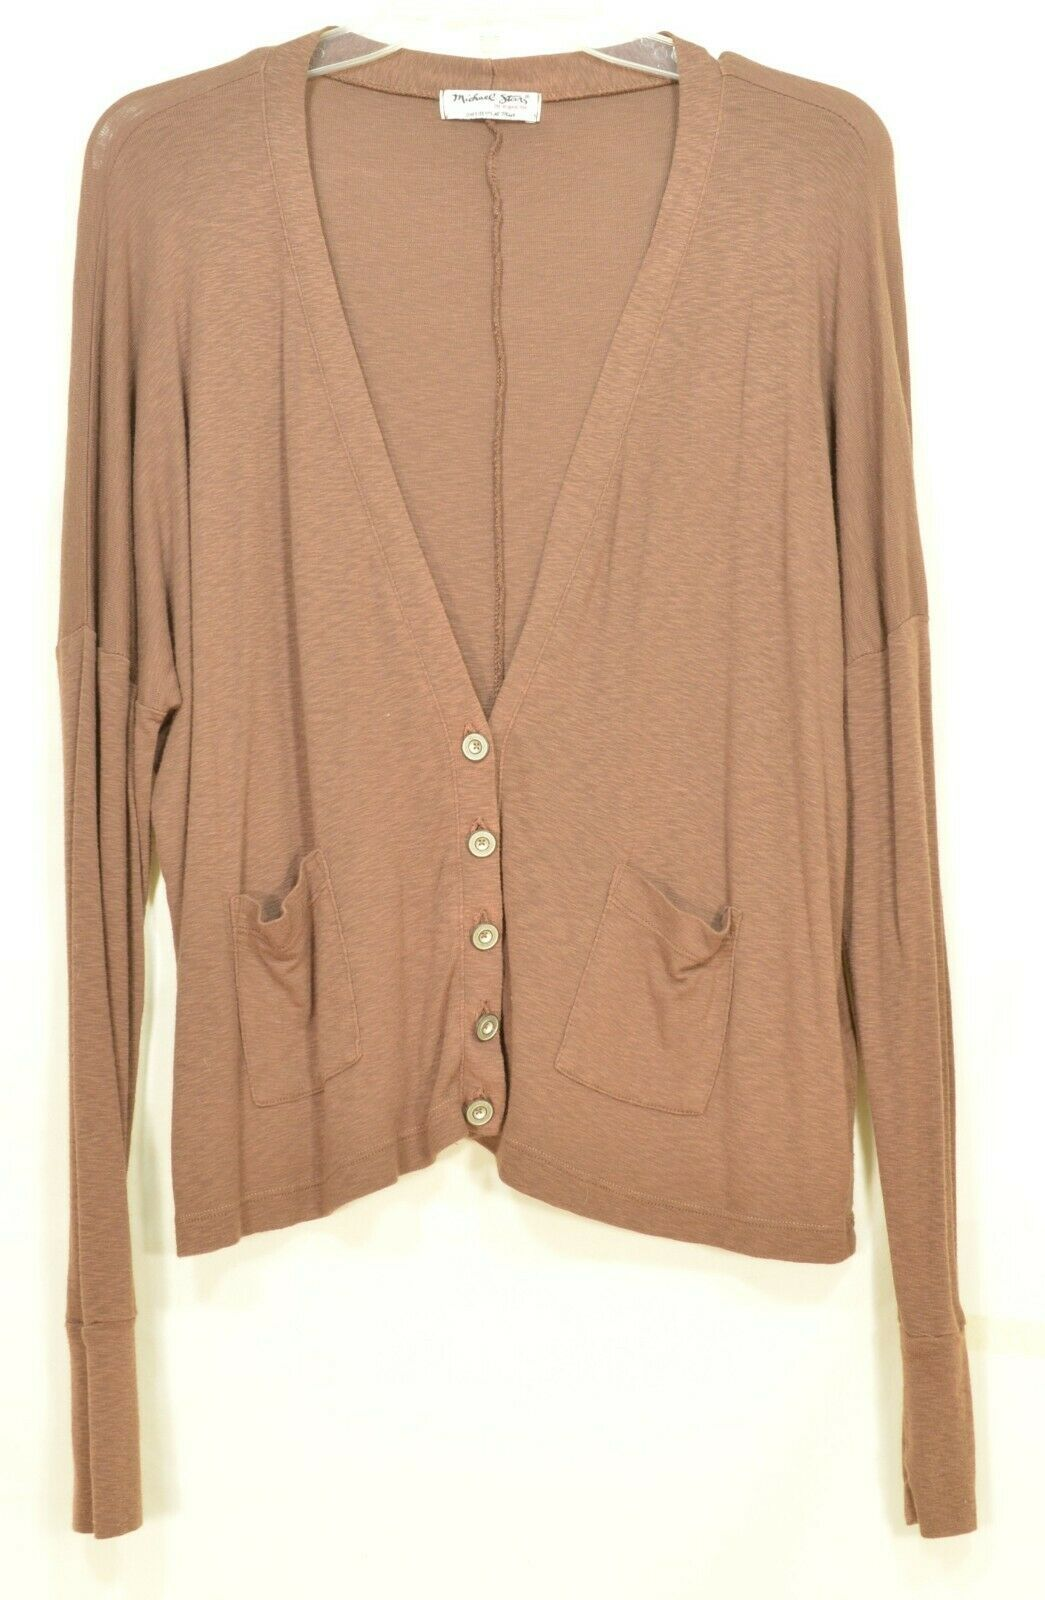 Michael Stars sweater OSFM brown cardigan dropped shoulders lightweight fall USA image 4